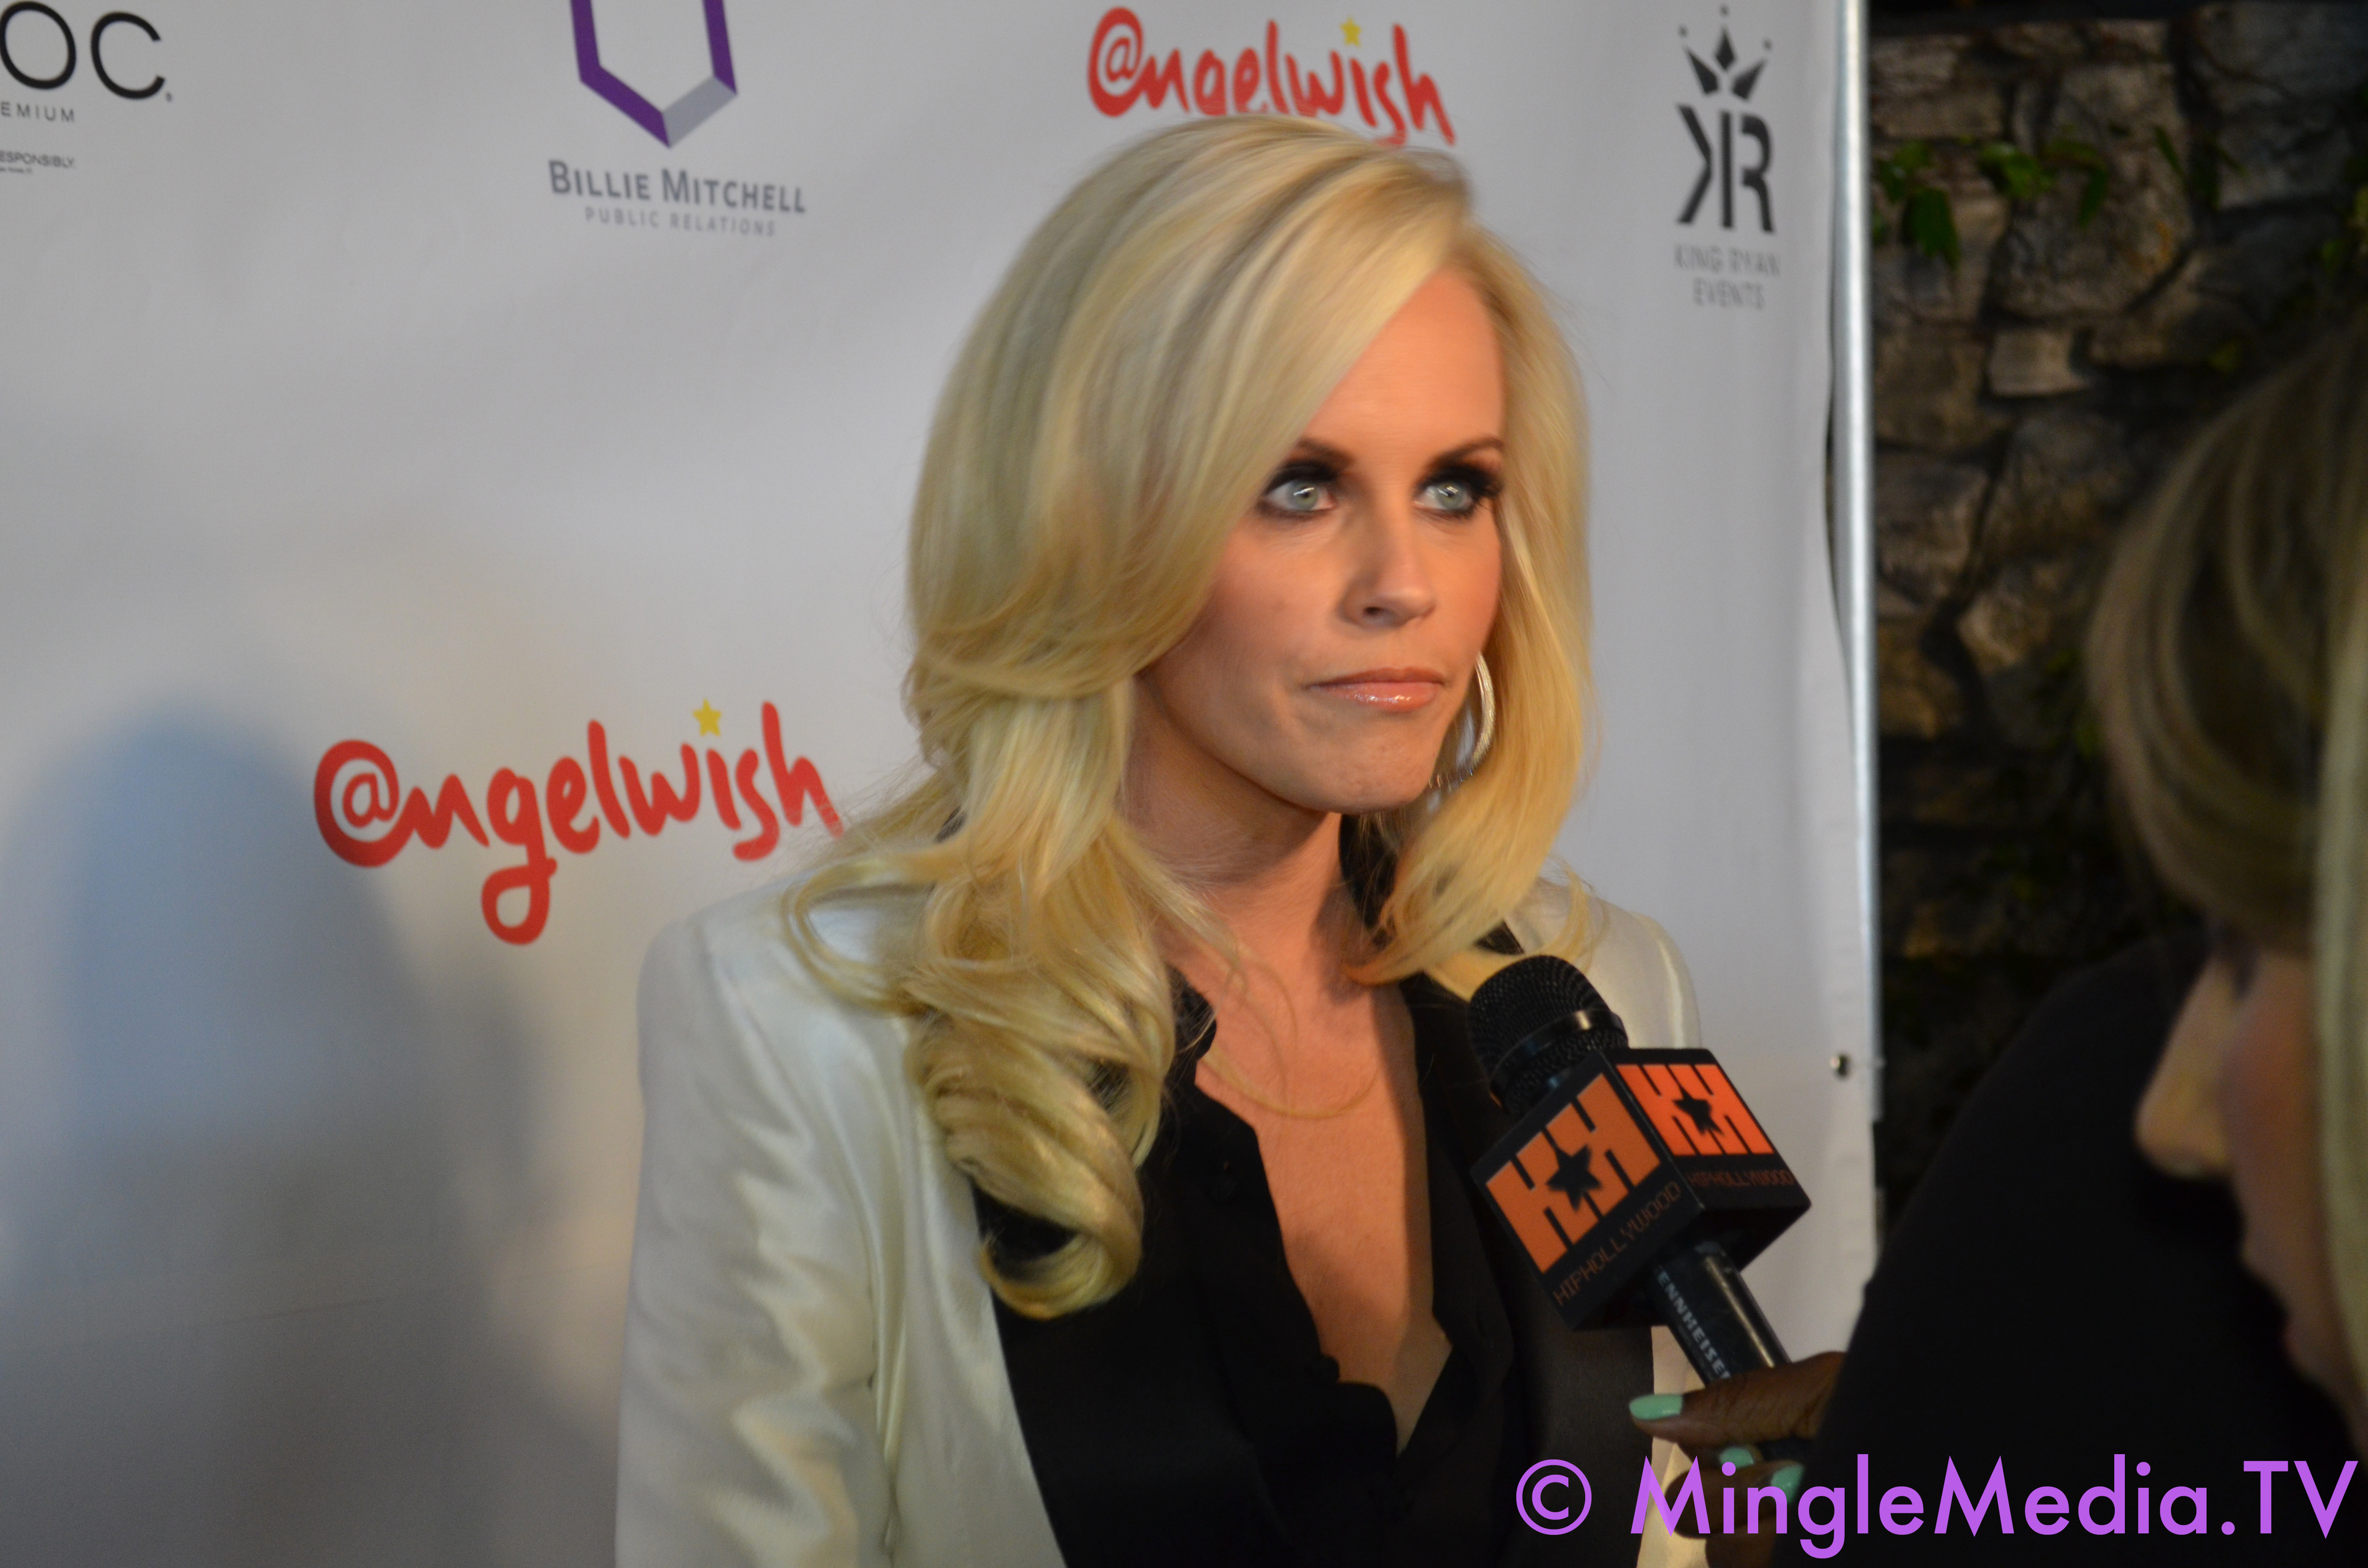 HPV campaigner Katie Couric compared to autism vaccine campaigner Jenny McCarthy by The Washington Times